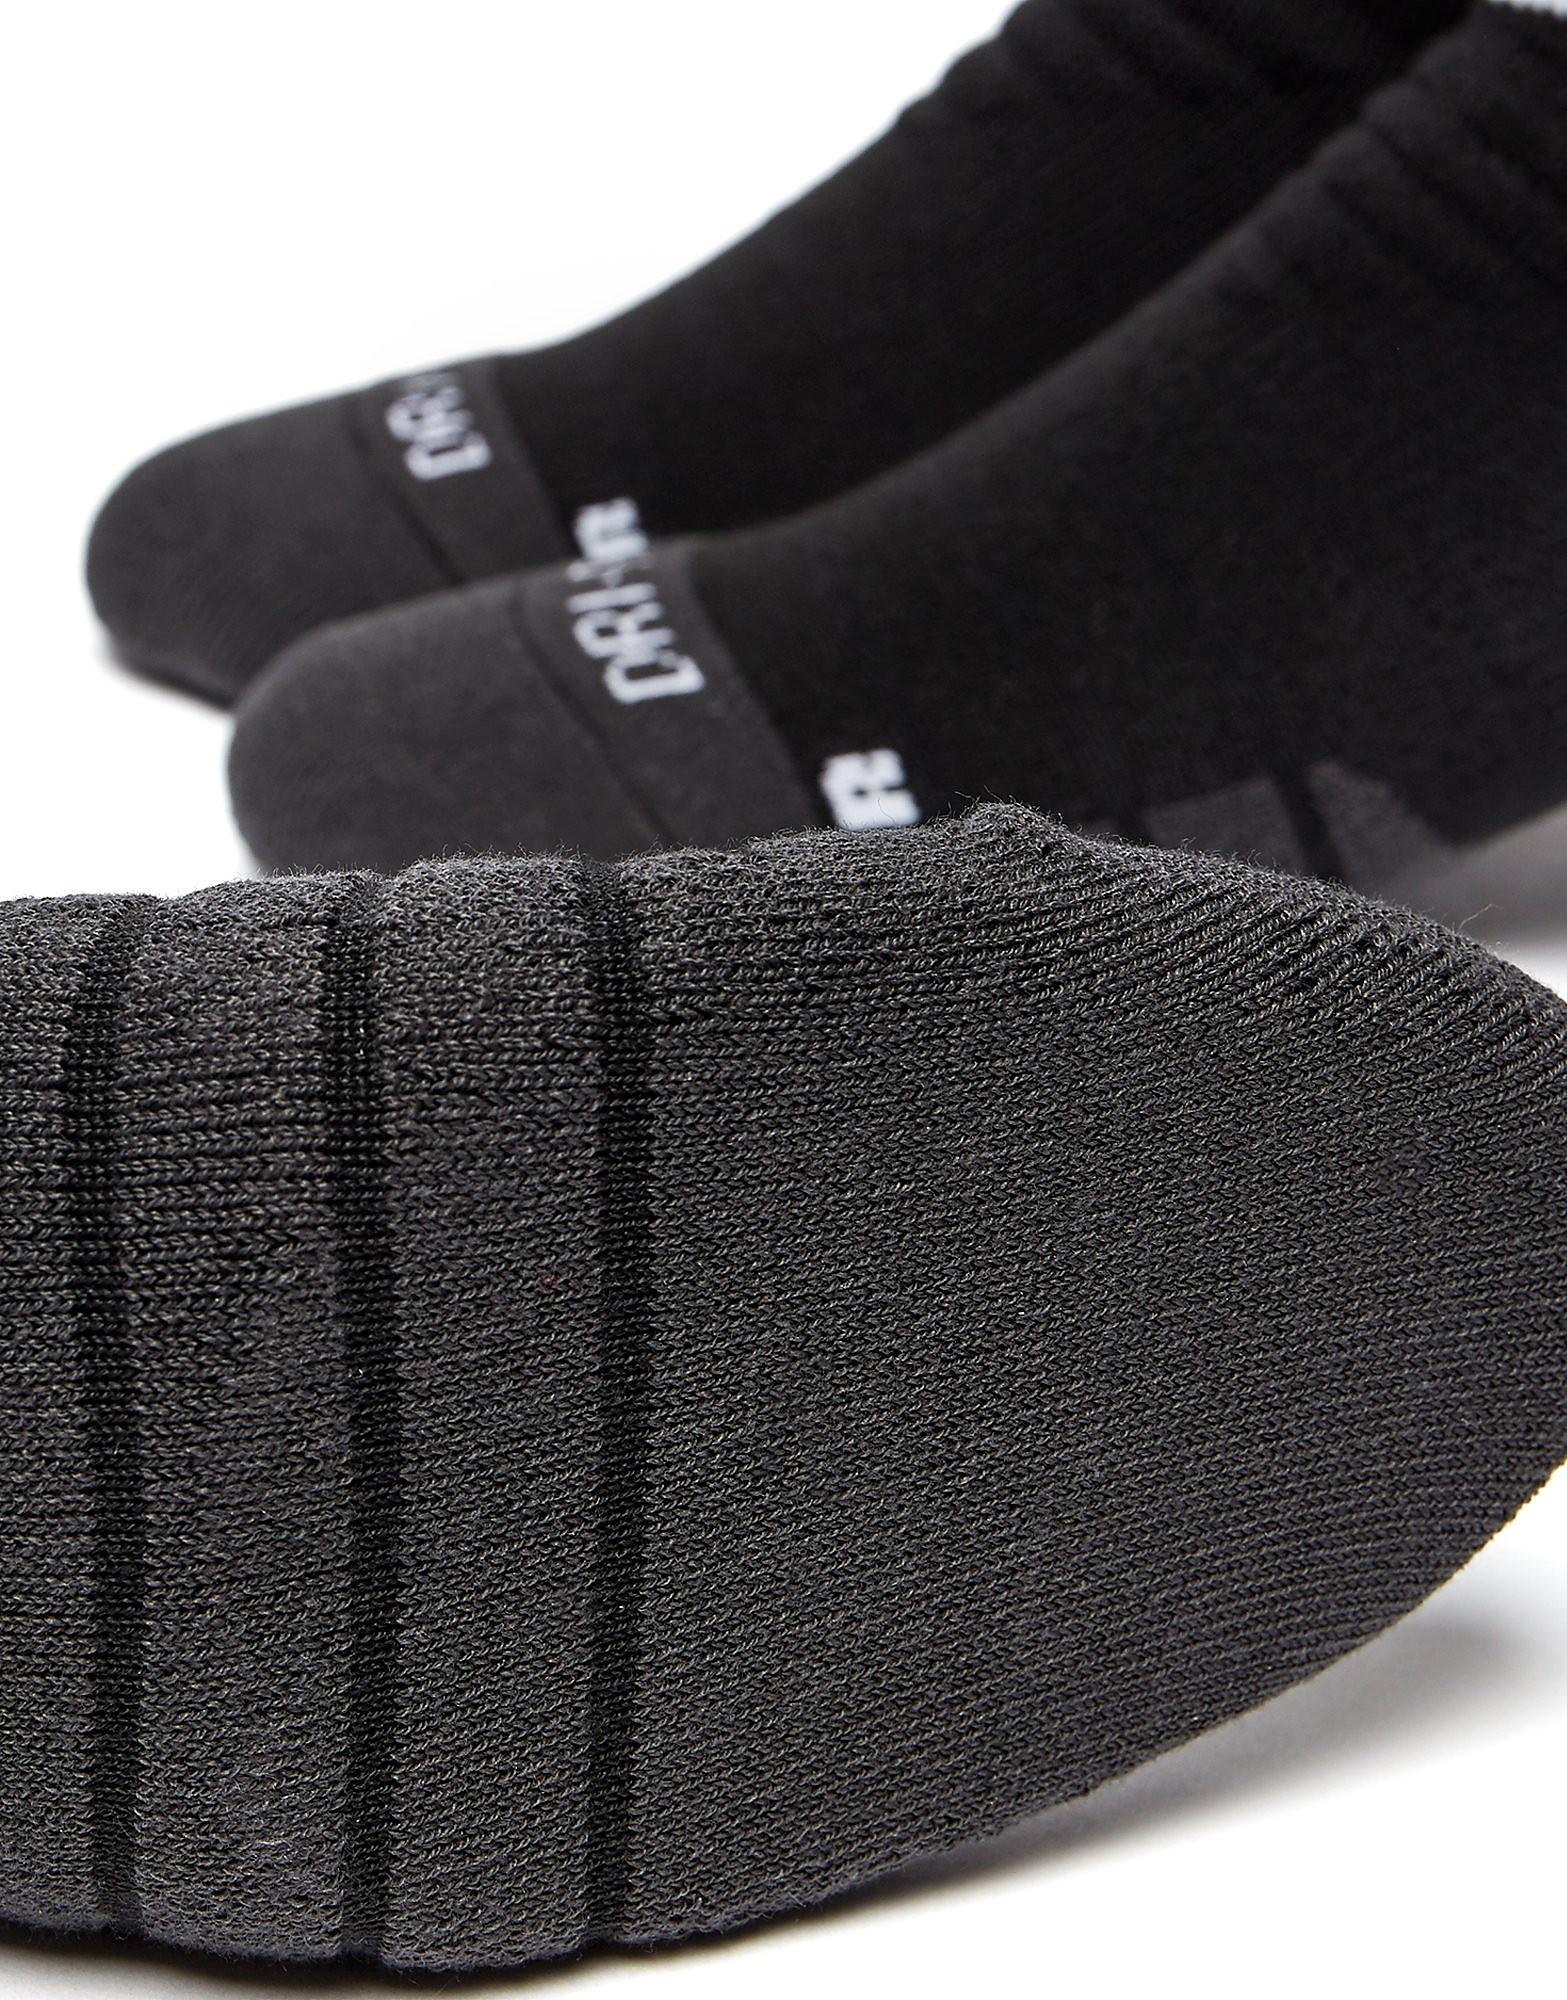 Nike Dri-FIT Quarter Socks